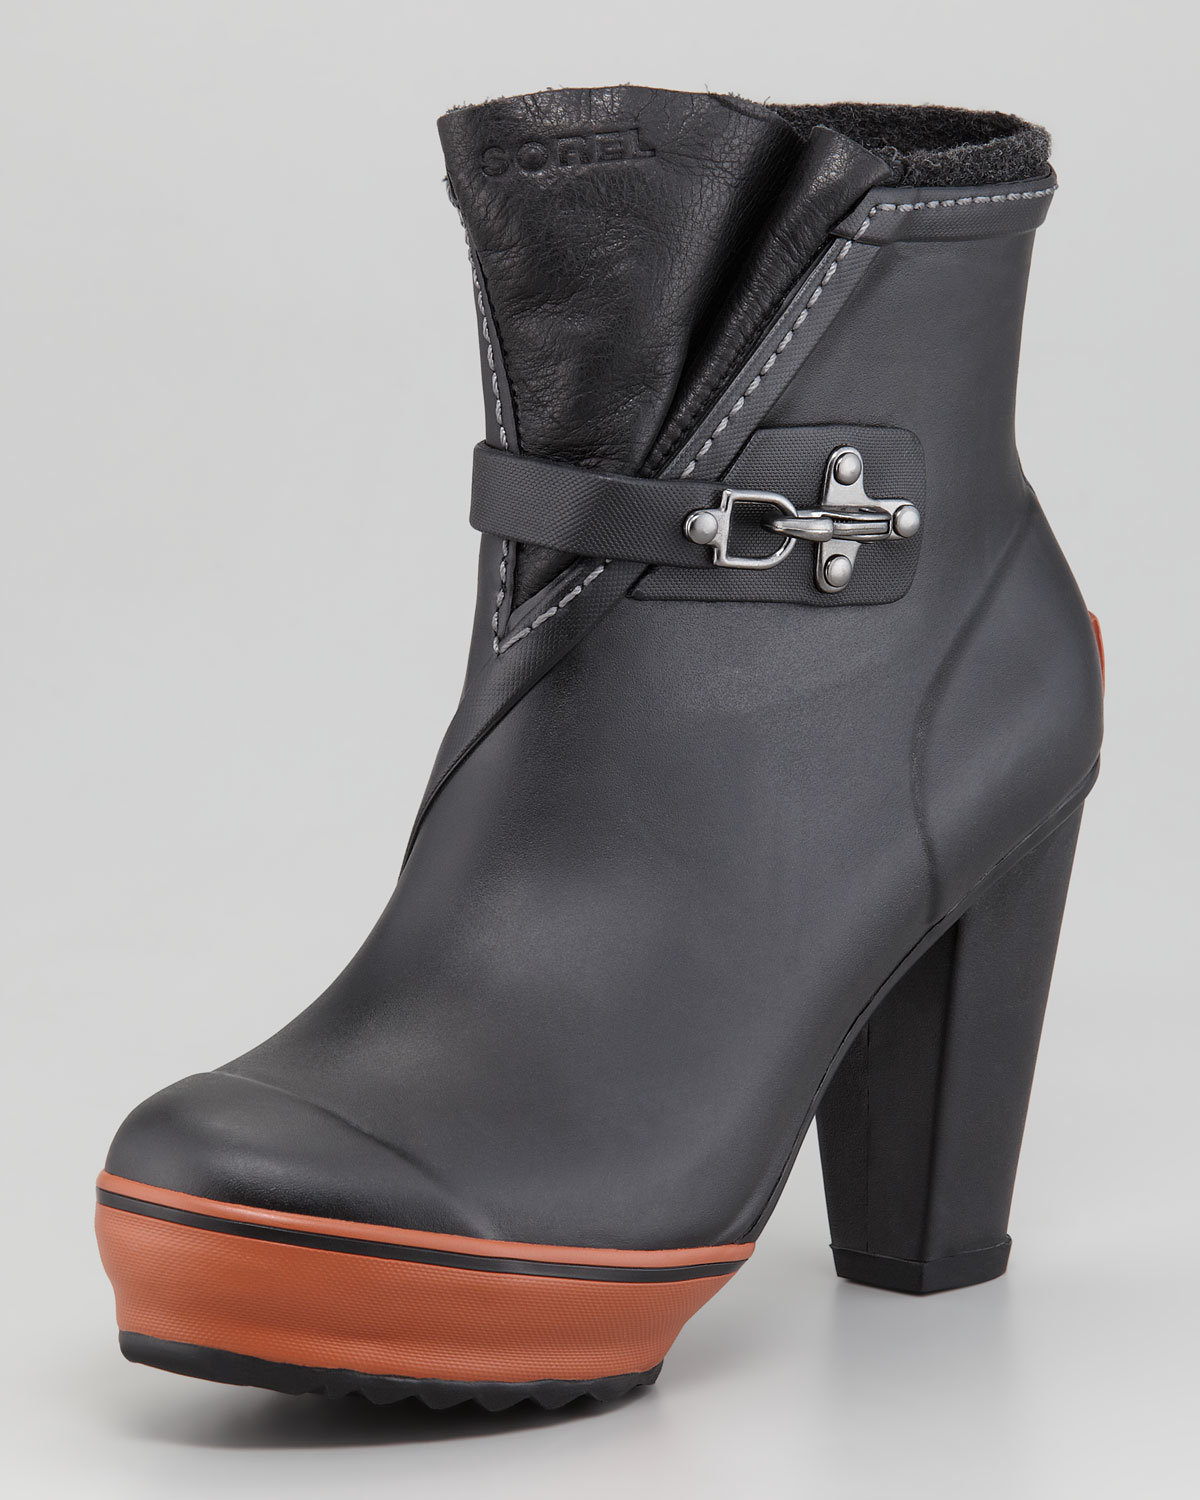 Sorel Medina Highheel Rain Boot in Black | Lyst